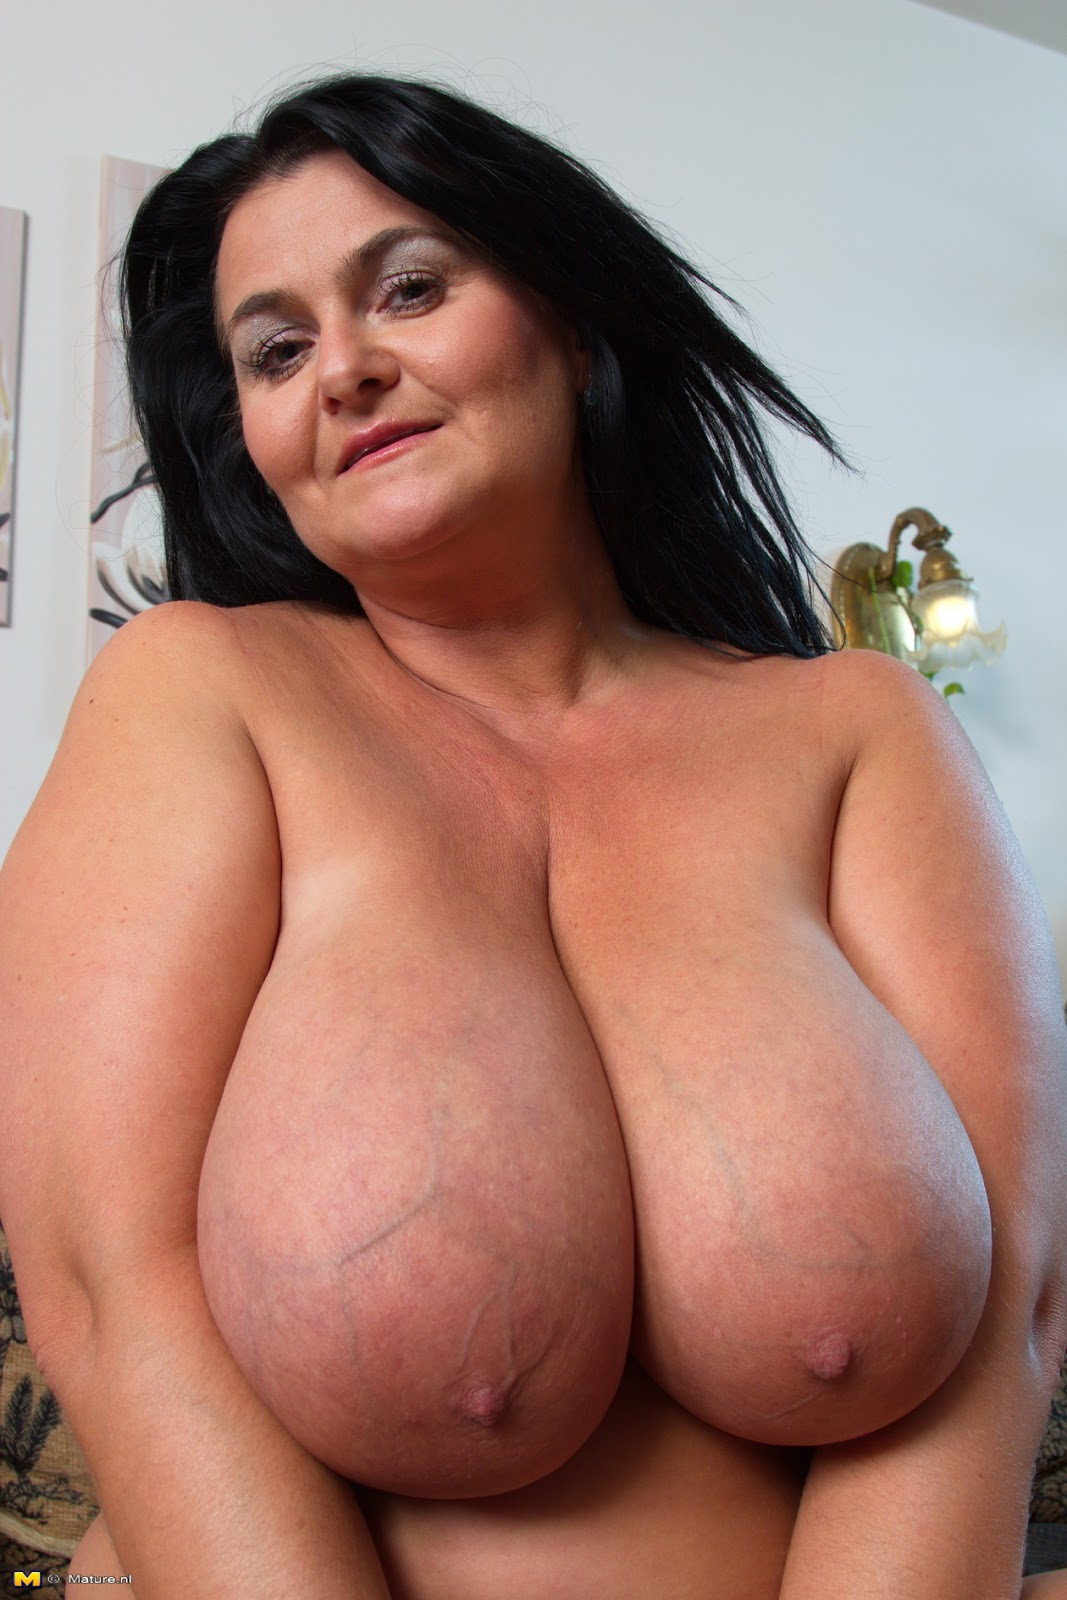 Nude Women With Huge Breast